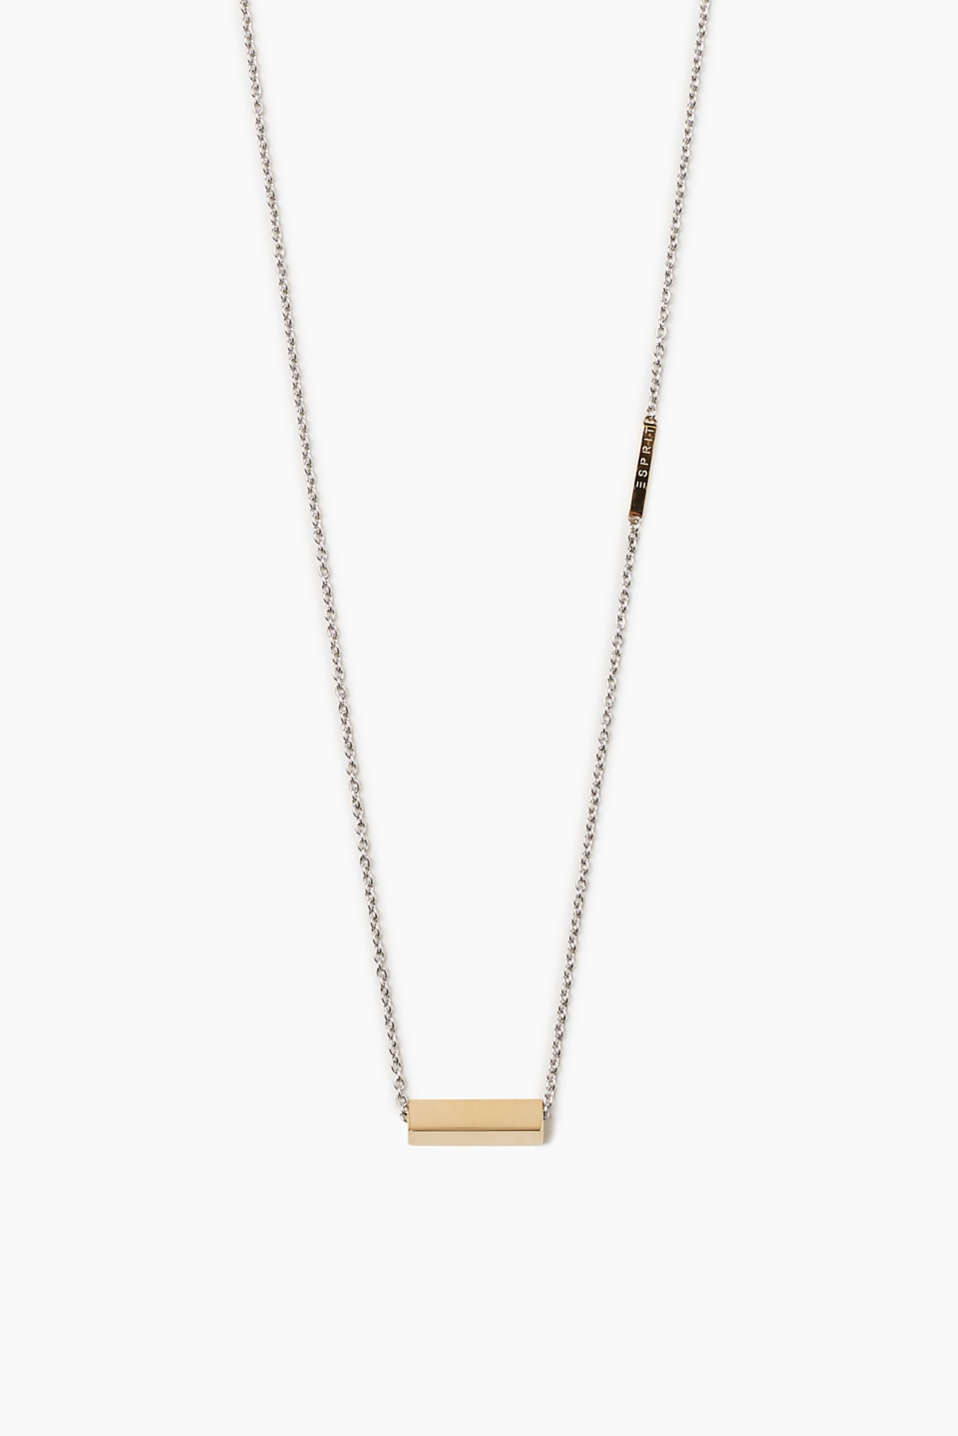 Esprit - Fine stainless steel necklace with pendant